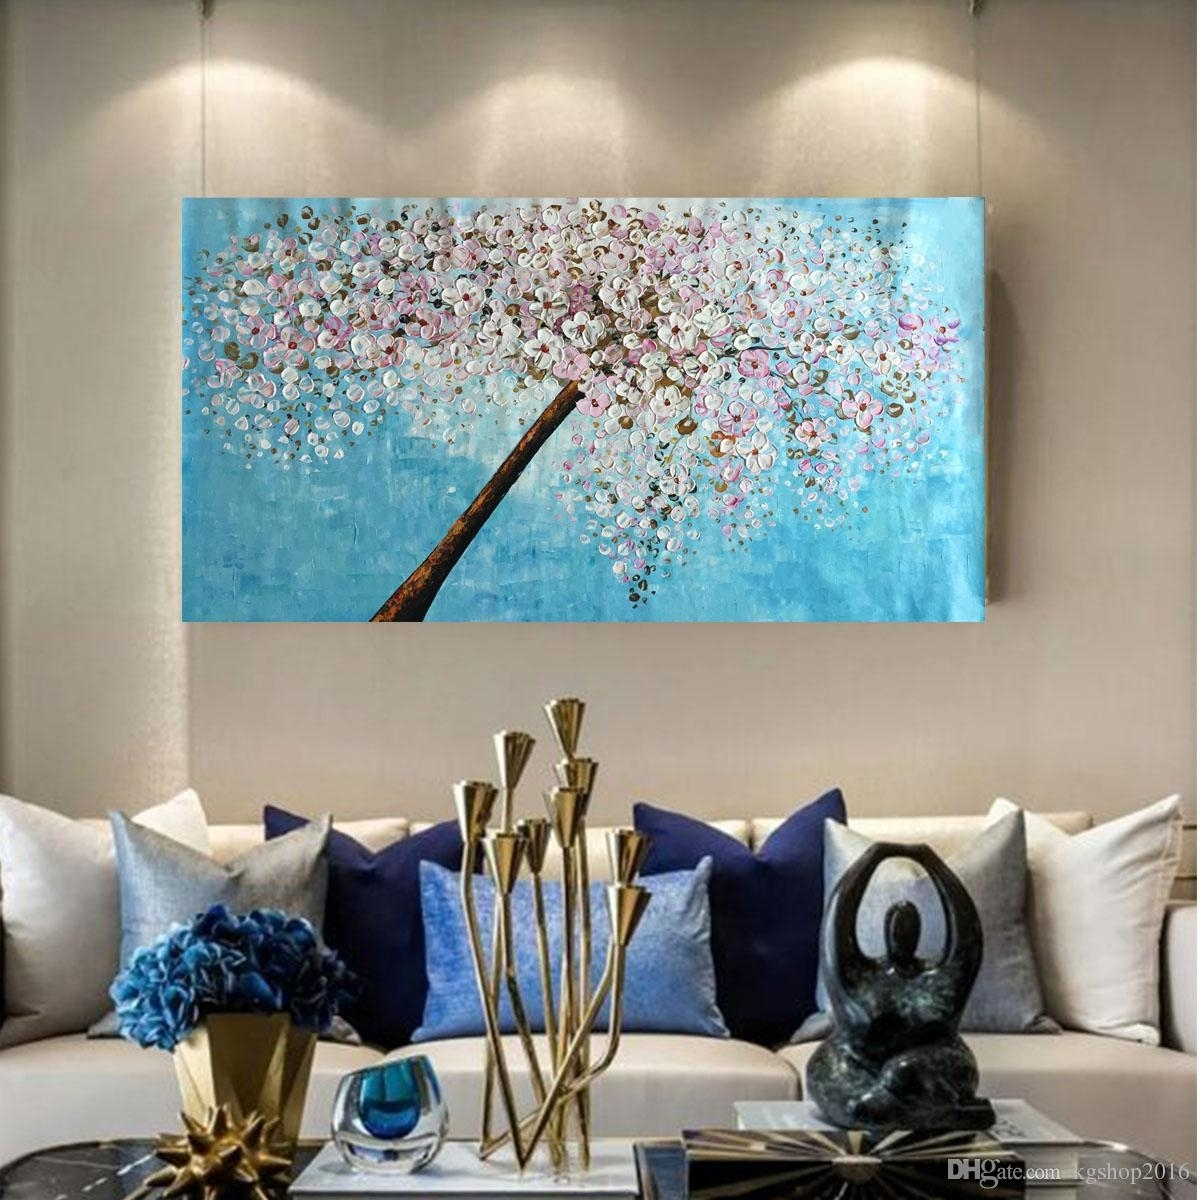 2018 Kgtech Thick Textured Acrylic Paintings 3D Floral Wall Art In Most Up To Date Acrylic Wall Art (View 2 of 20)